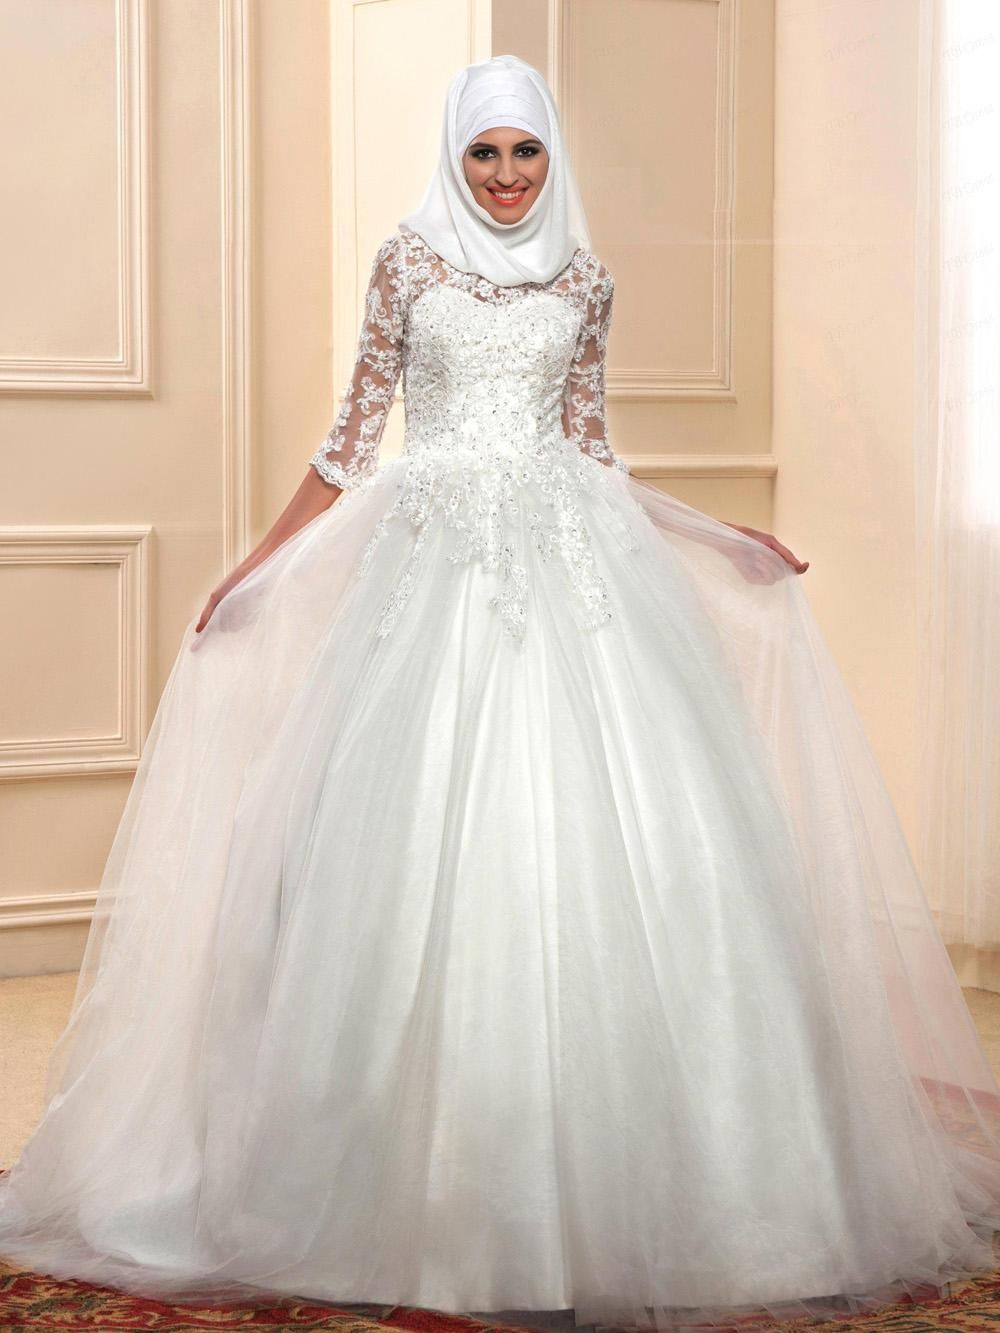 2016 Arabic Muslim Wedding Dresses White Hijab Gowns 3 4 Long Sleeves Beading Appliques Beaded